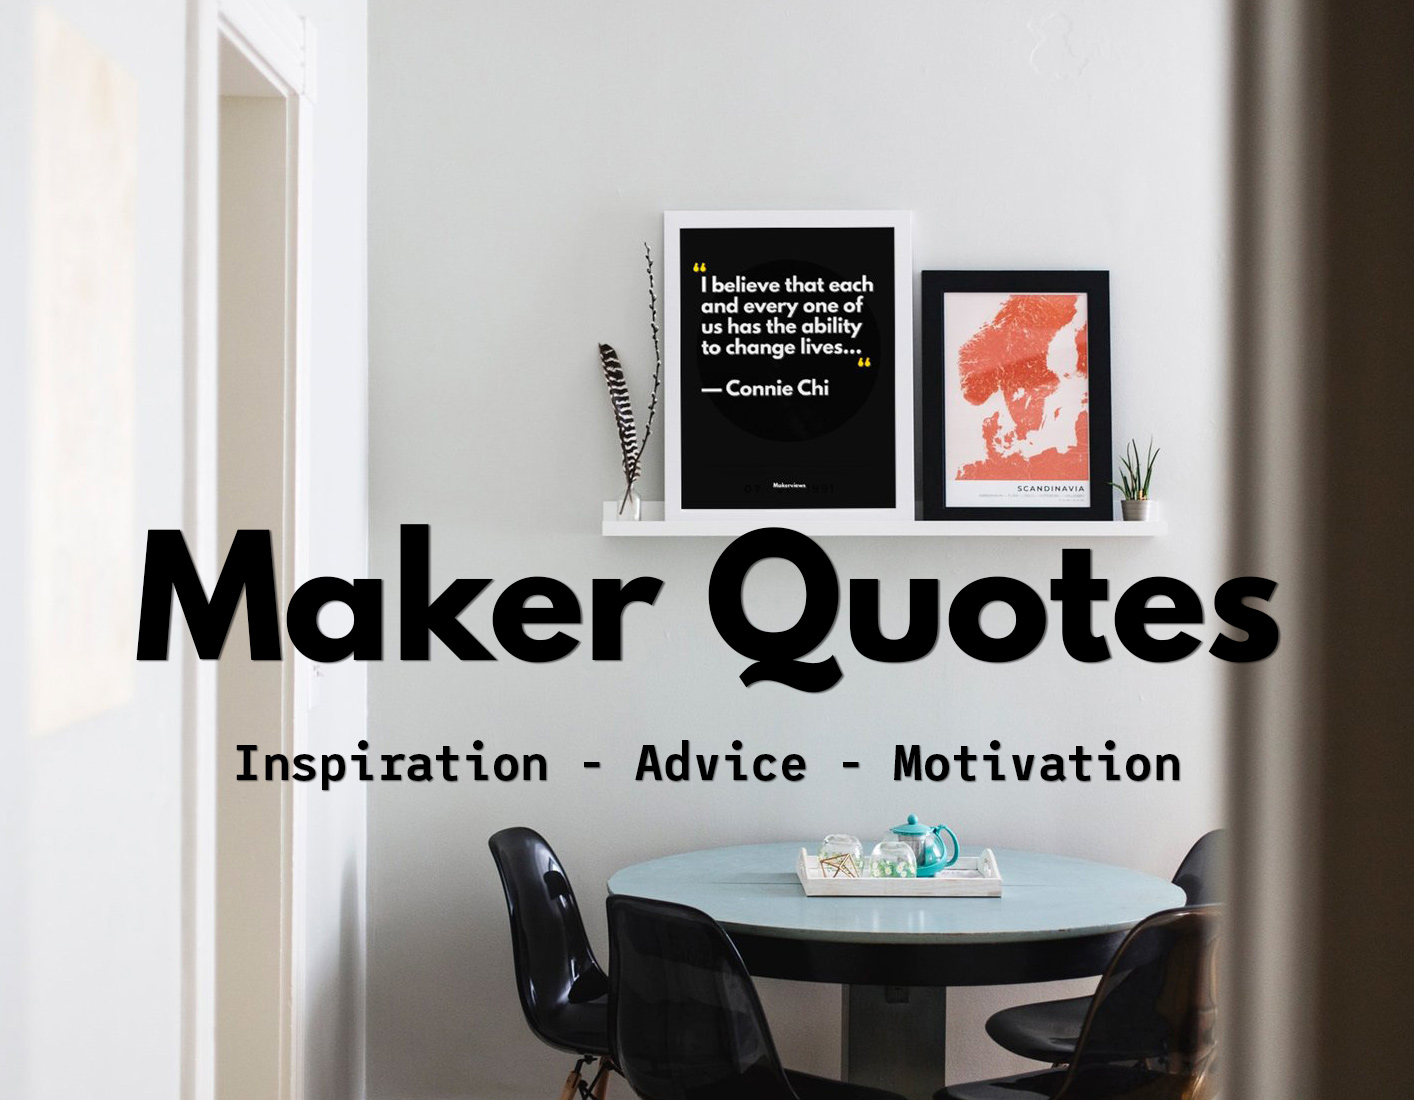 Maker Quotes 2019 - Advice, Inspirational, & Positive New Year Quote - Makerviews